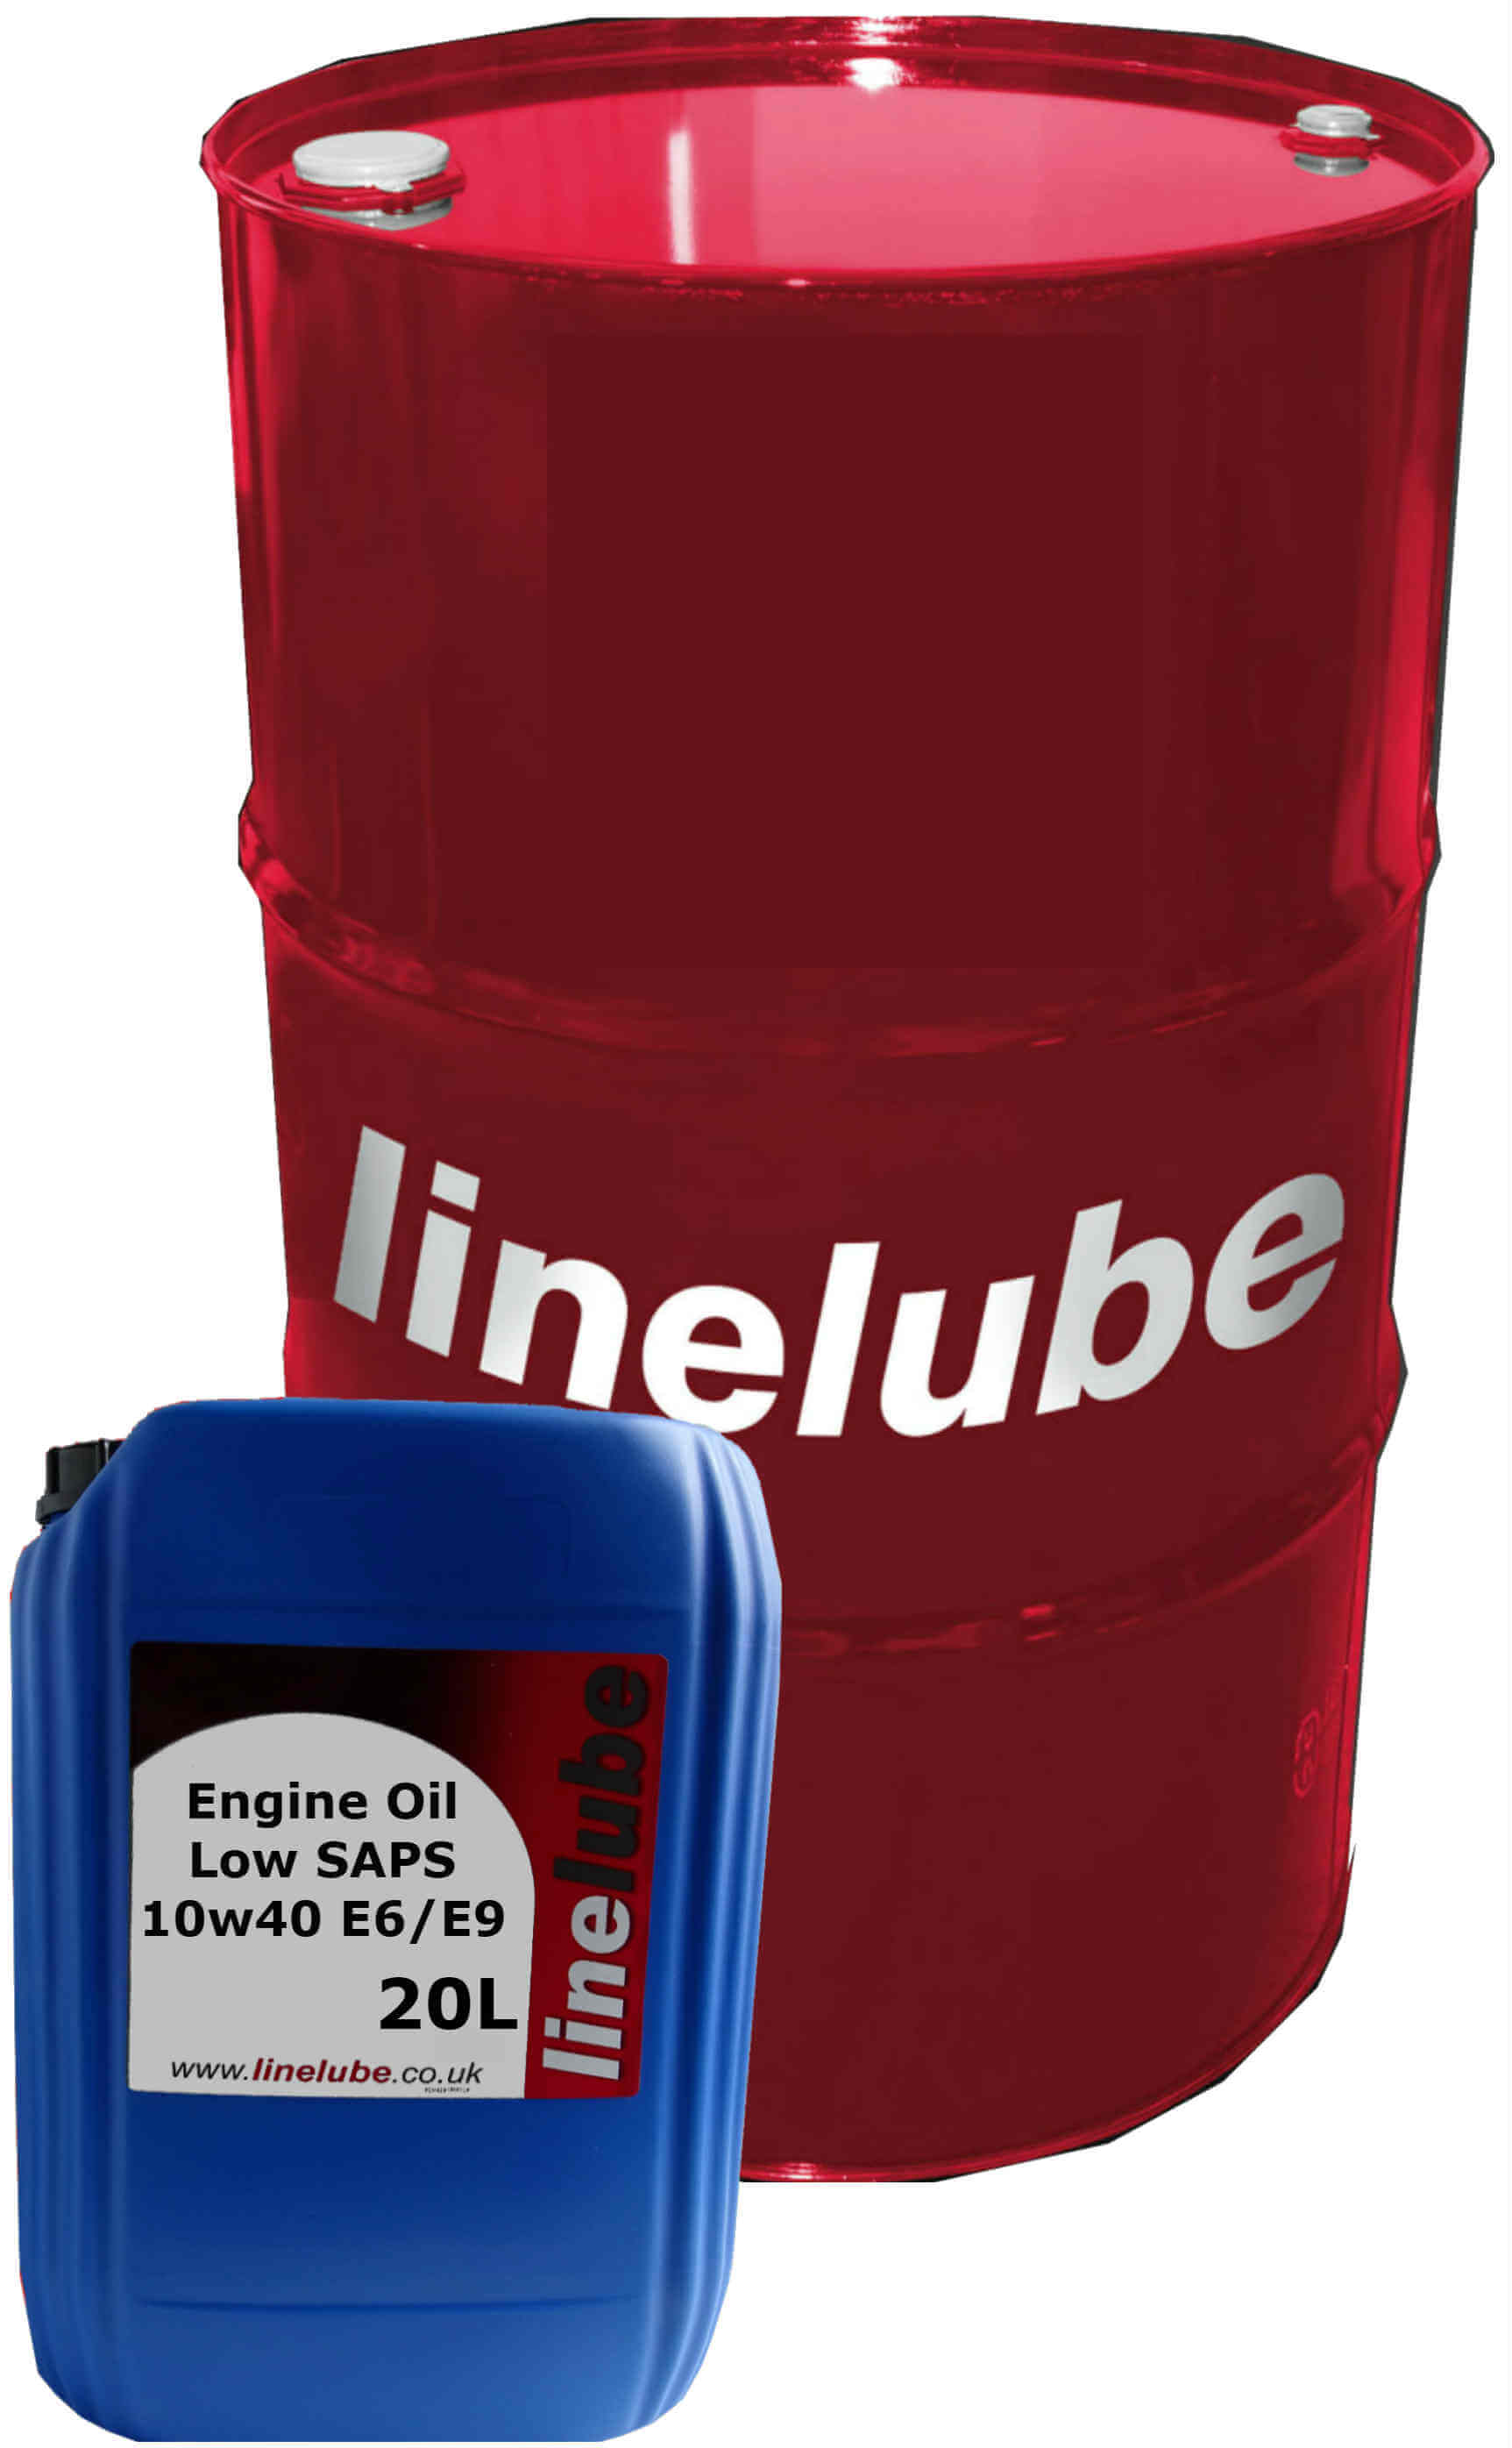 linelube Engine Oil Low SAPS 10W-40 E6/E9